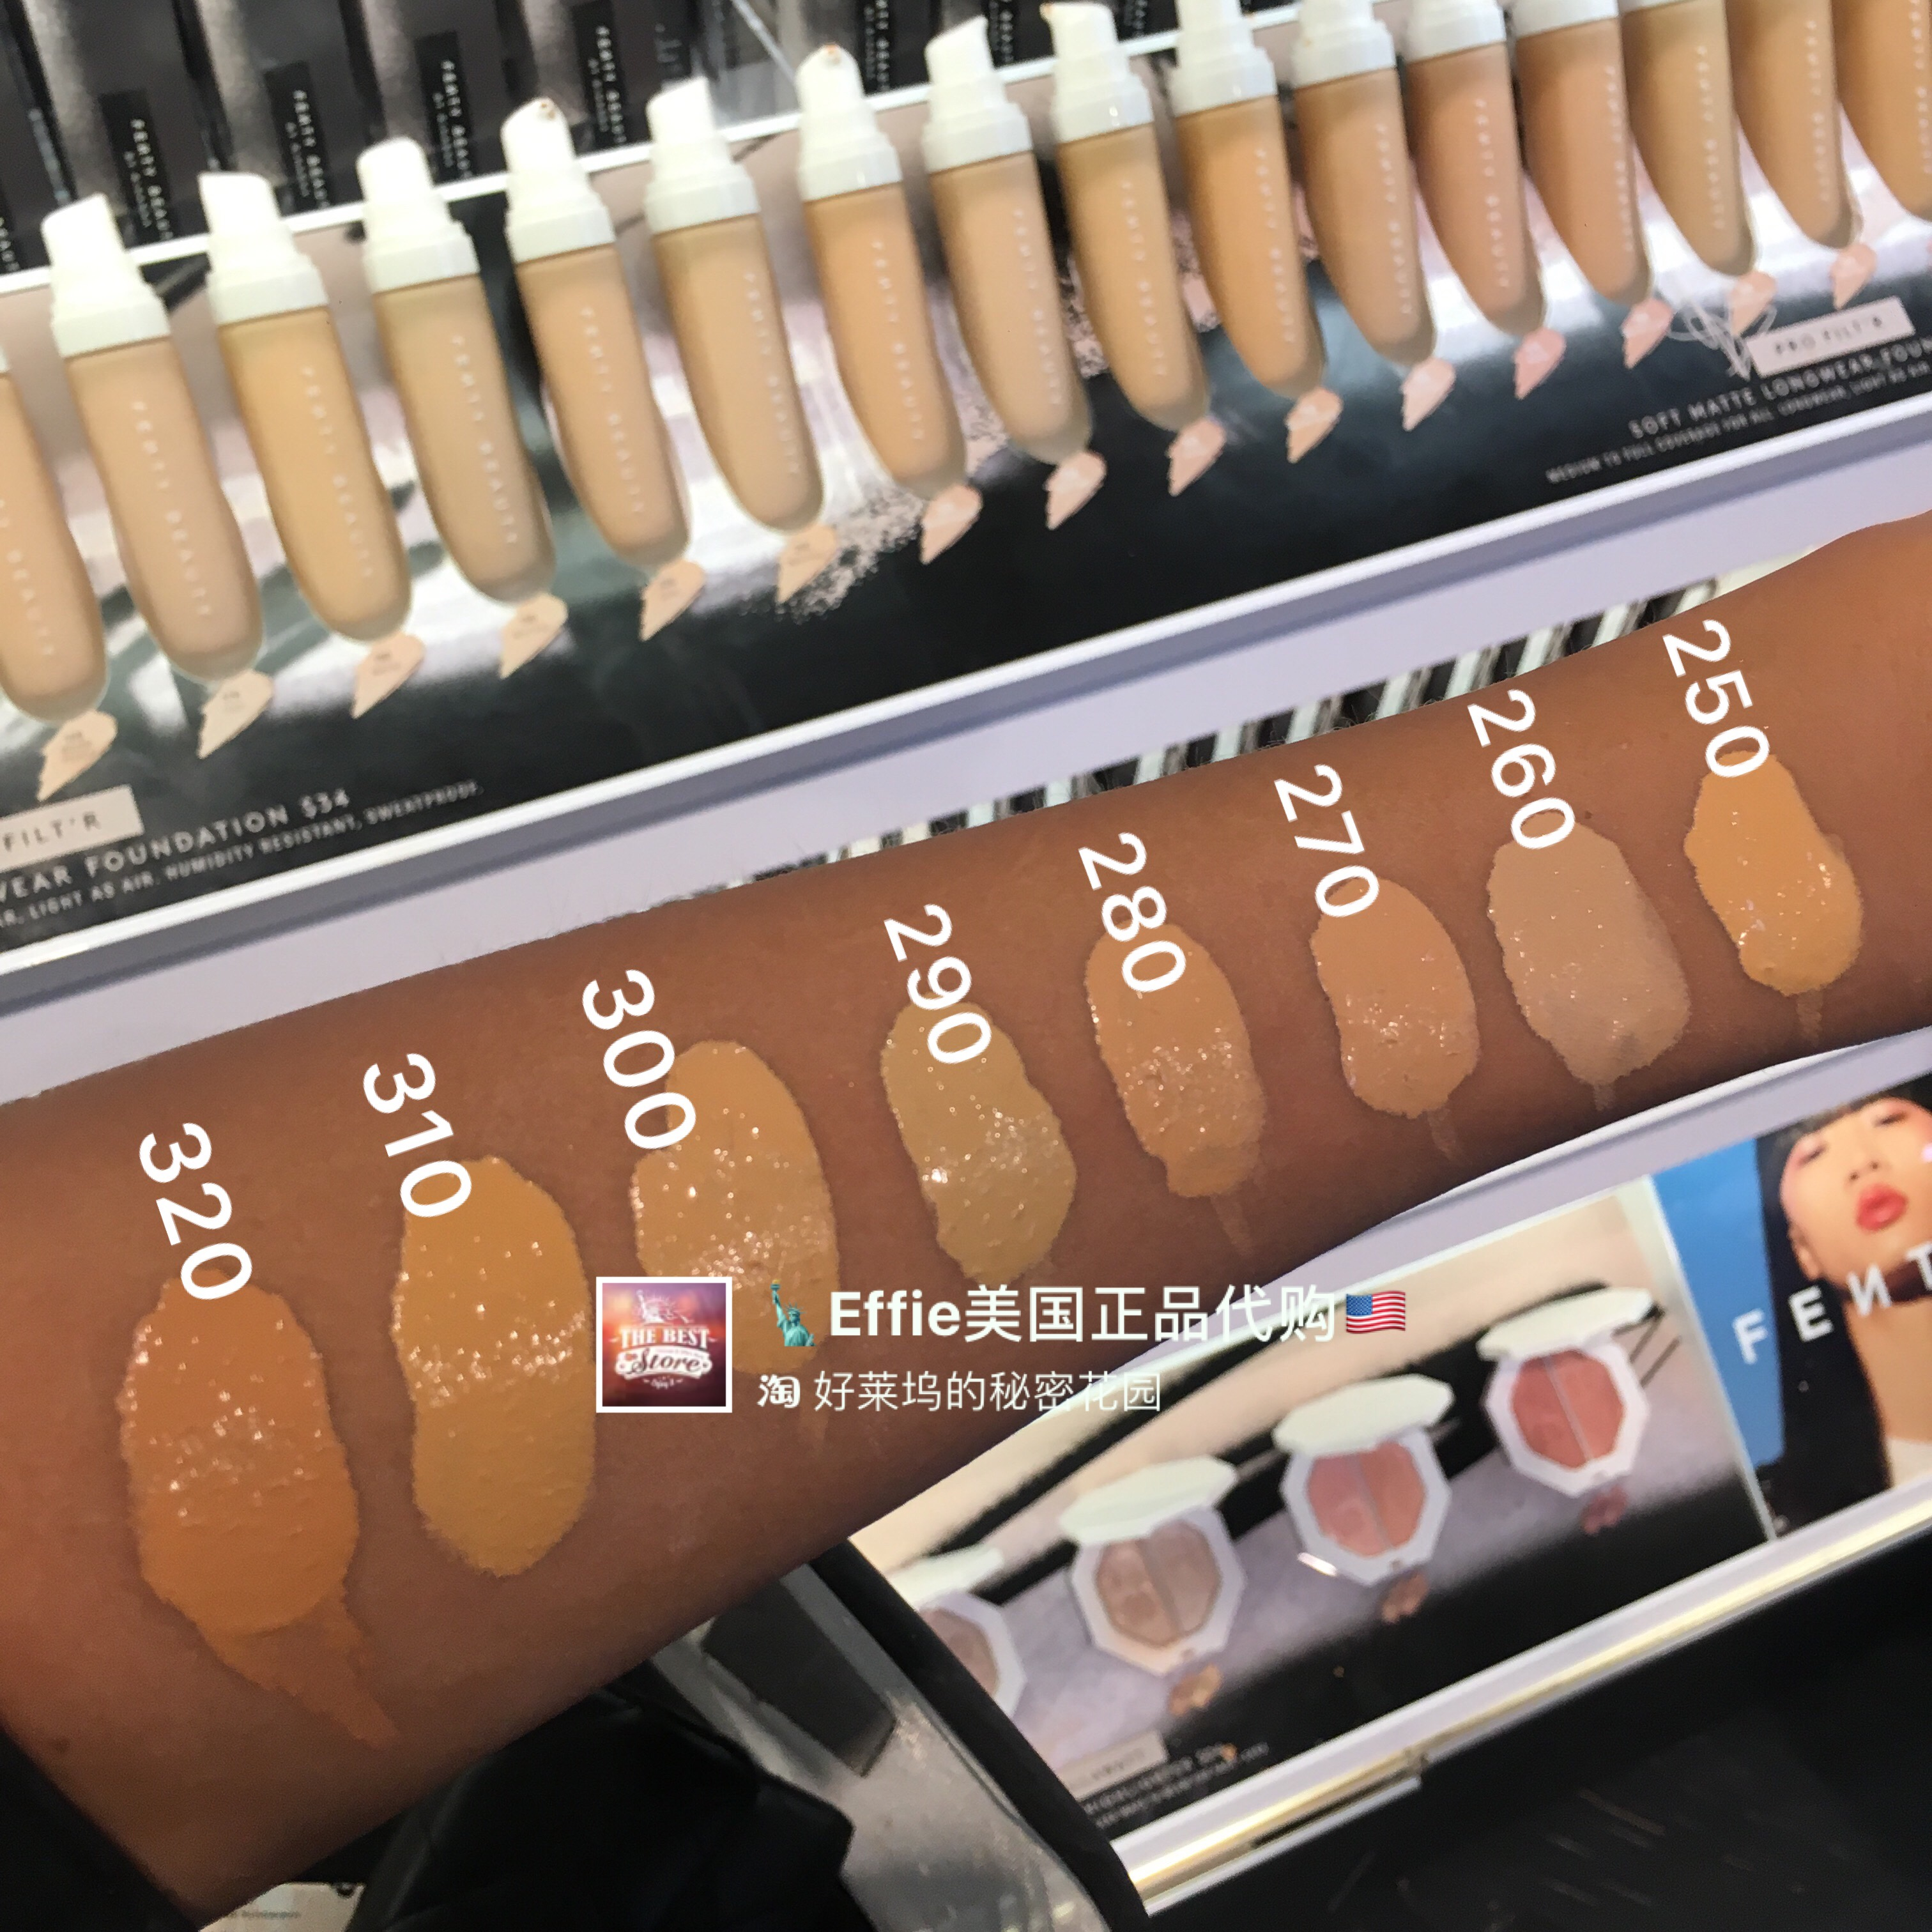 Usd 86 79 Genuine Spot Fenty Beauty By Rihanna Strong Concealer Oil Long Matte Foundation Wholesale From China Online Shopping Buy Asian Products Online From The Best Shoping Agent Chinahao Com